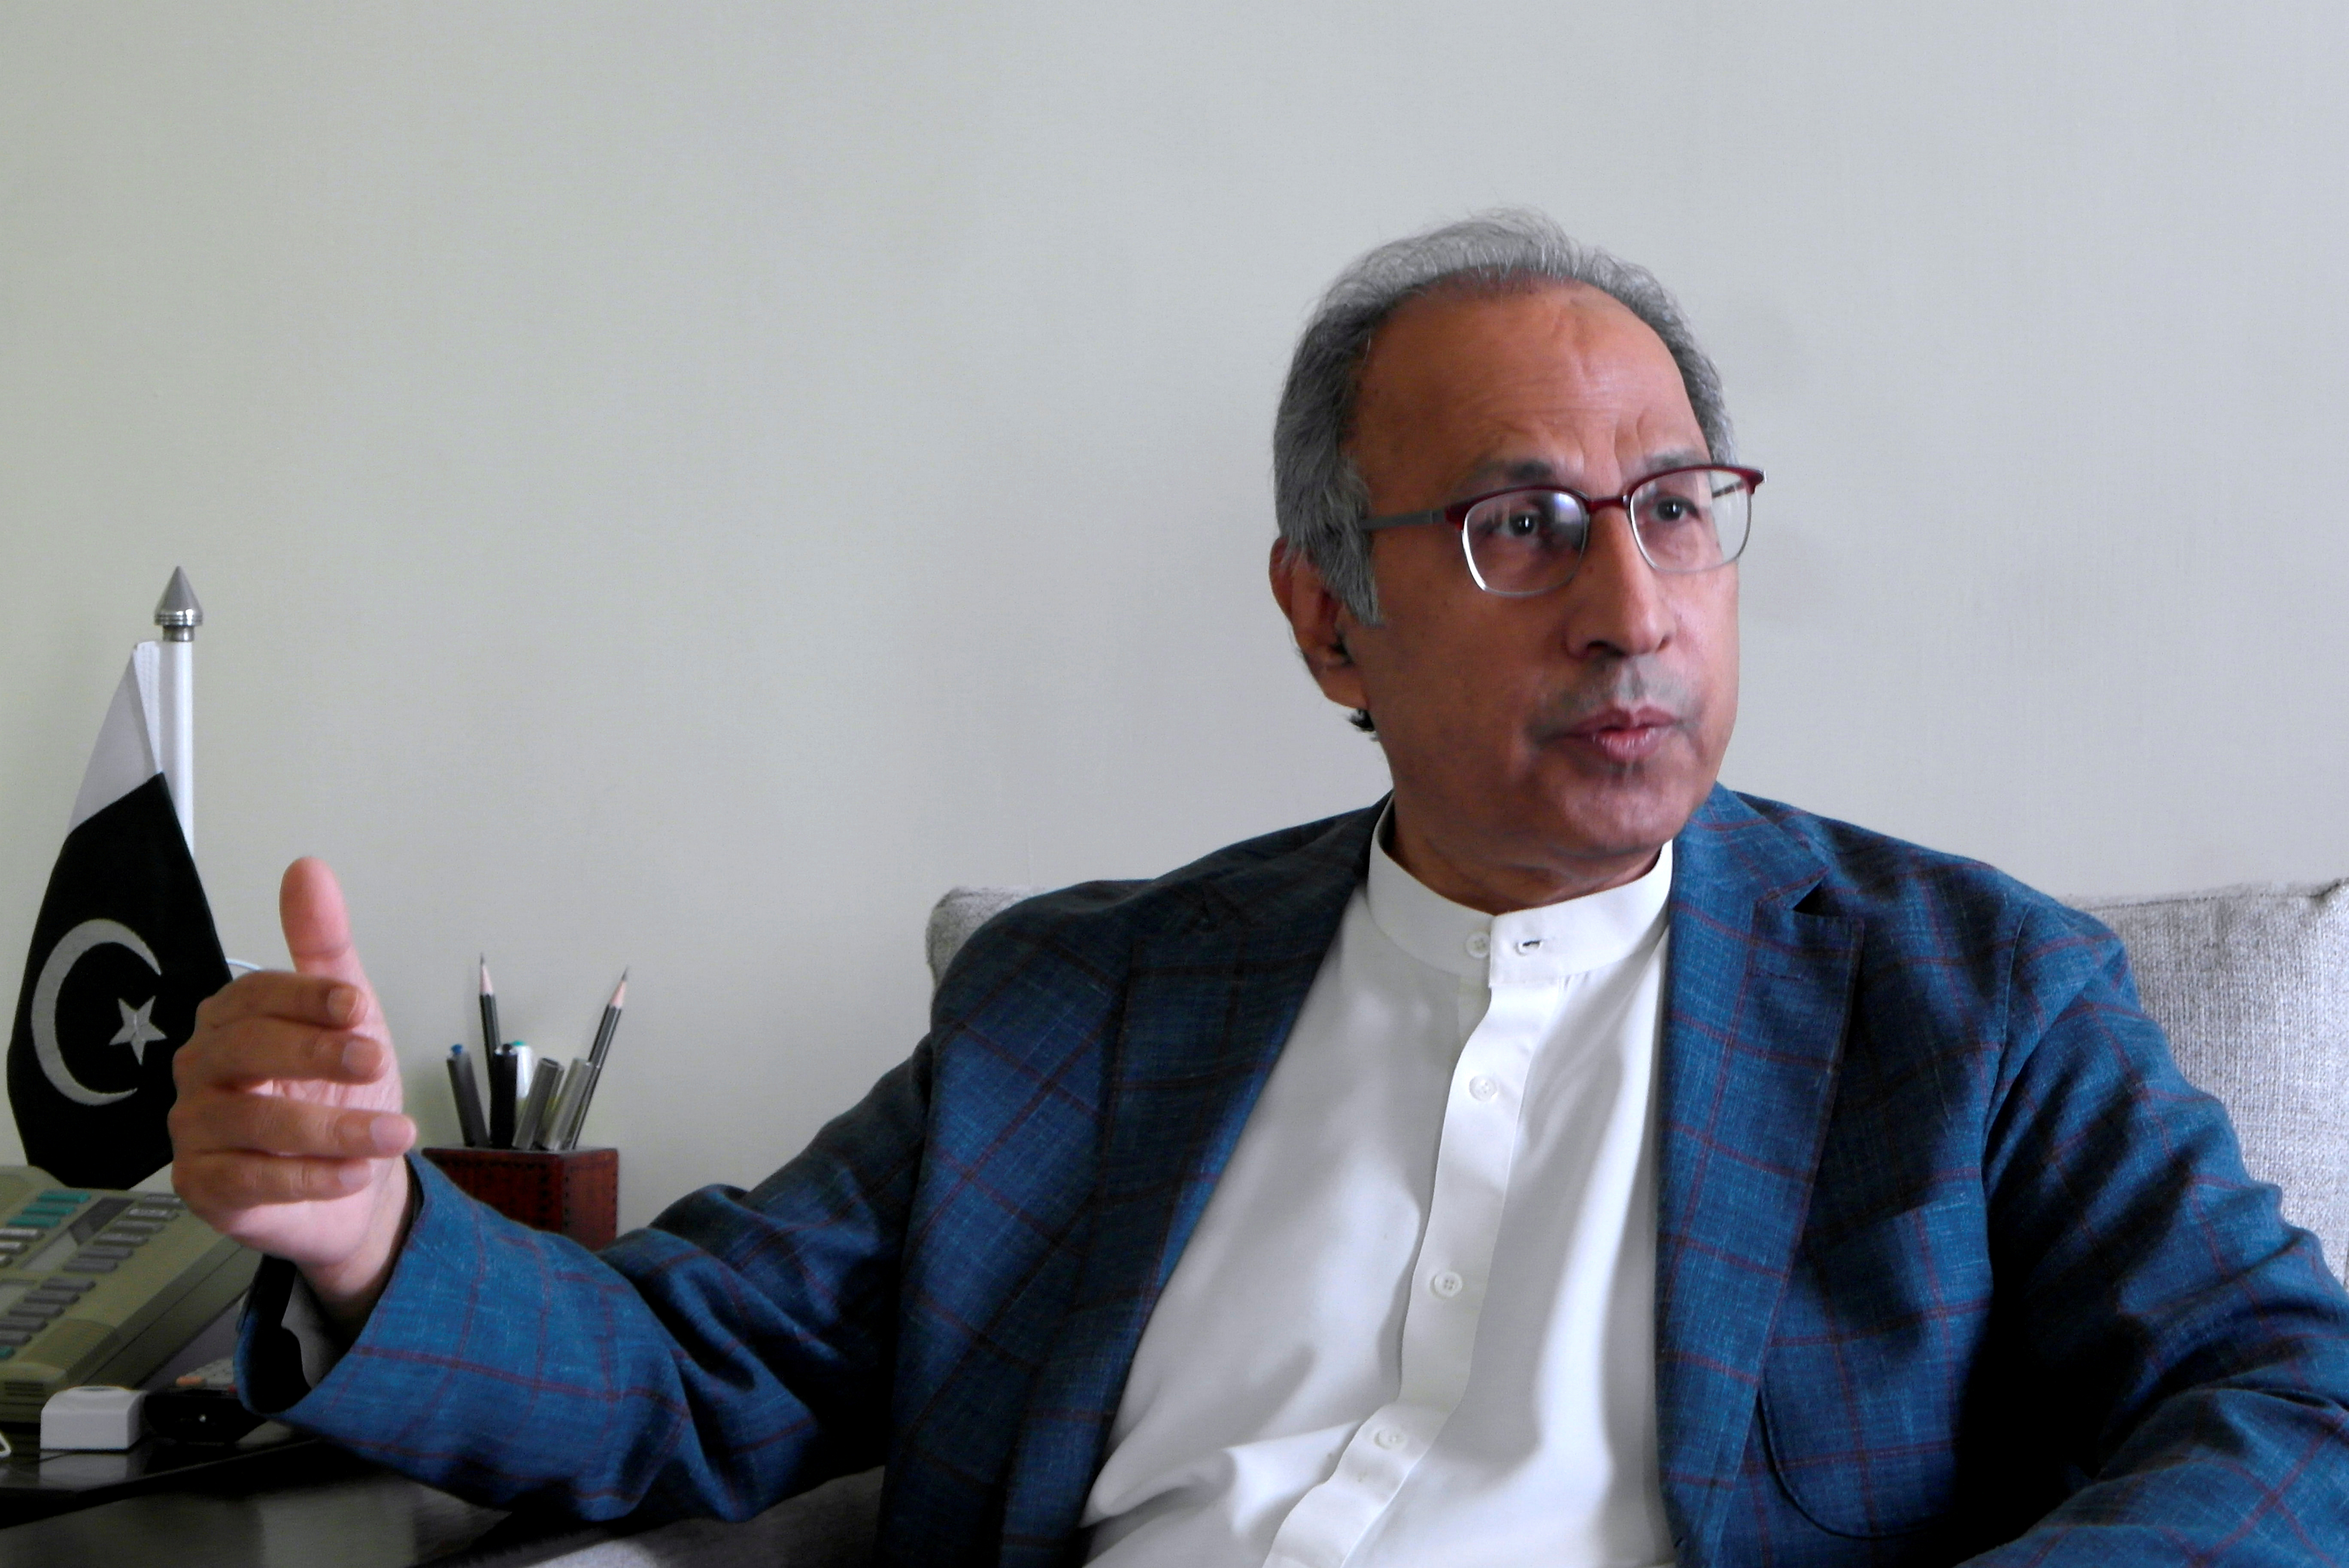 Pakistan's Finance Minister Abdul Hafeez Shaikh speaks during an interview with Reuters at his office, as the coronavirus disease (COVID-19) outbreak continues, in Islamabad, Pakistan May 8, 2020. REUTERS/Asif Shahzad